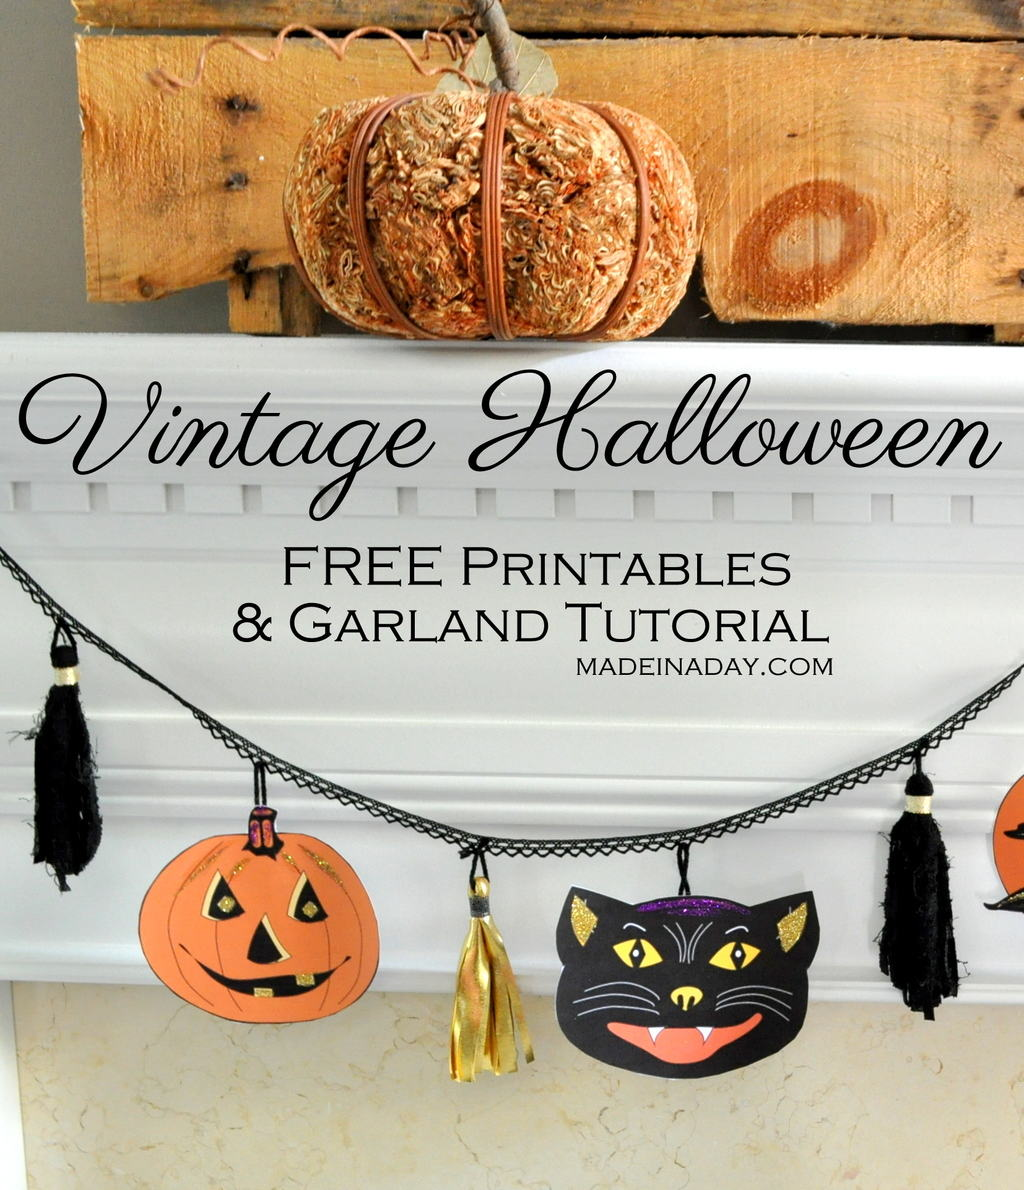 Vintage Halloween Free Printables Garland Tutorial madeinaday.com